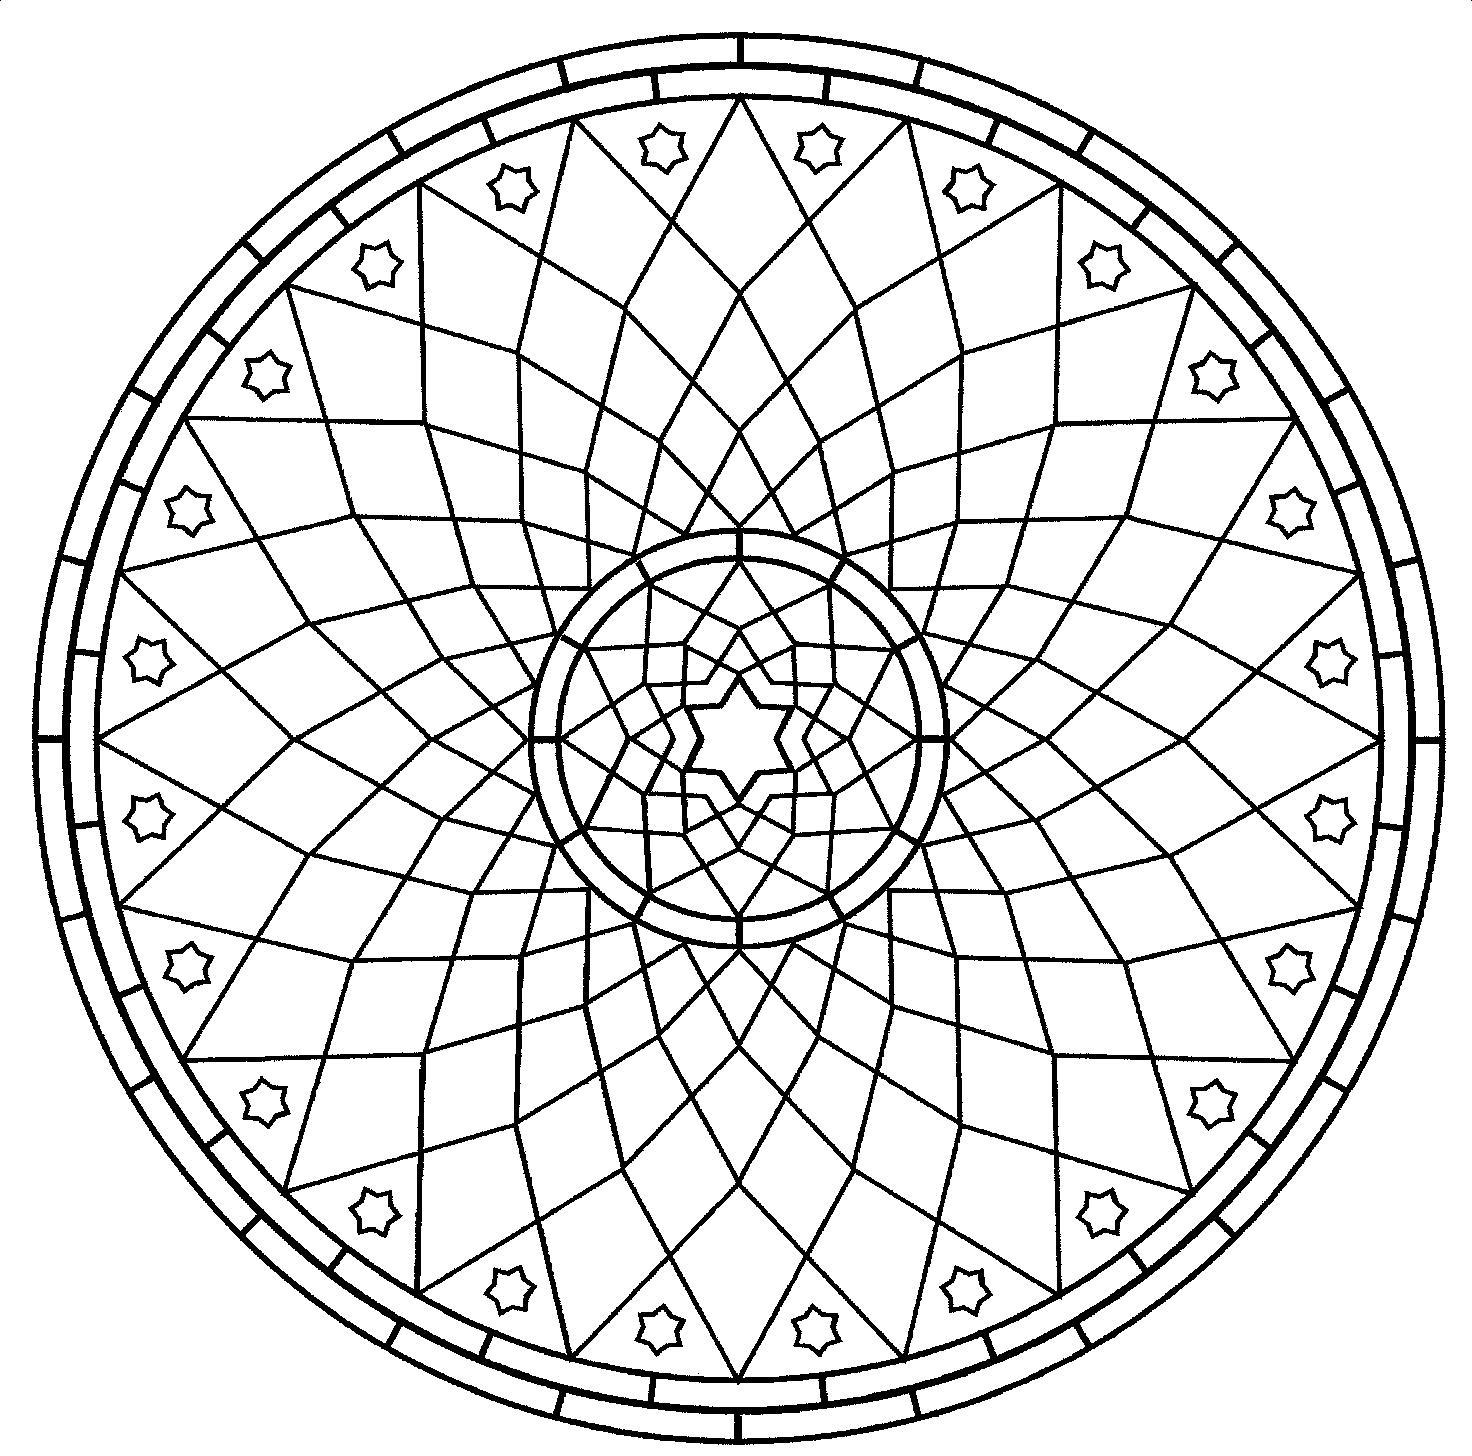 1472x1456 Appealing Printable For Kids Best Coloring Pages Image Of Mandala